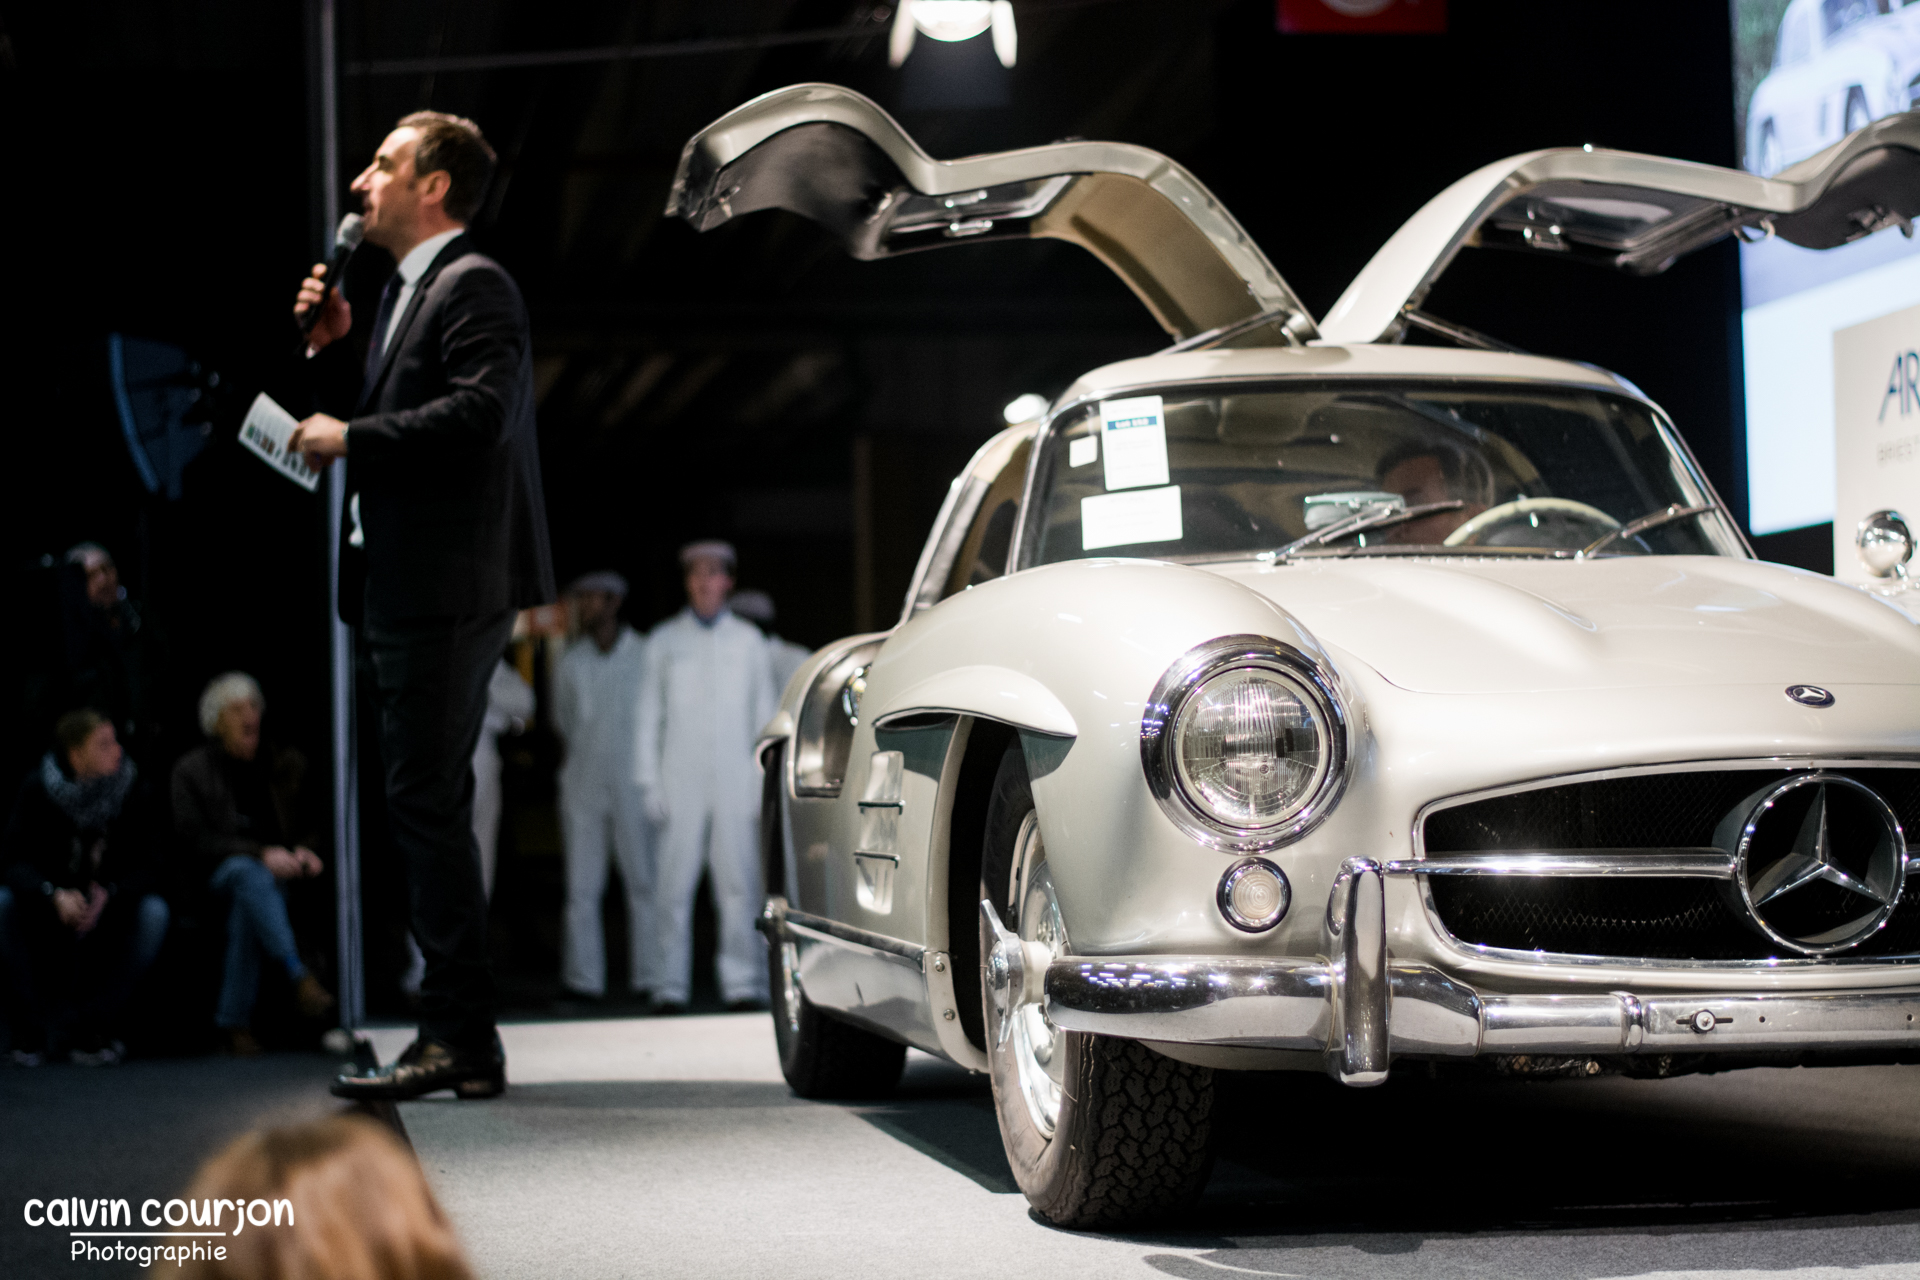 1956 Mercedes-Benz 300SL Gullwing - Calvin Courjon Photographie